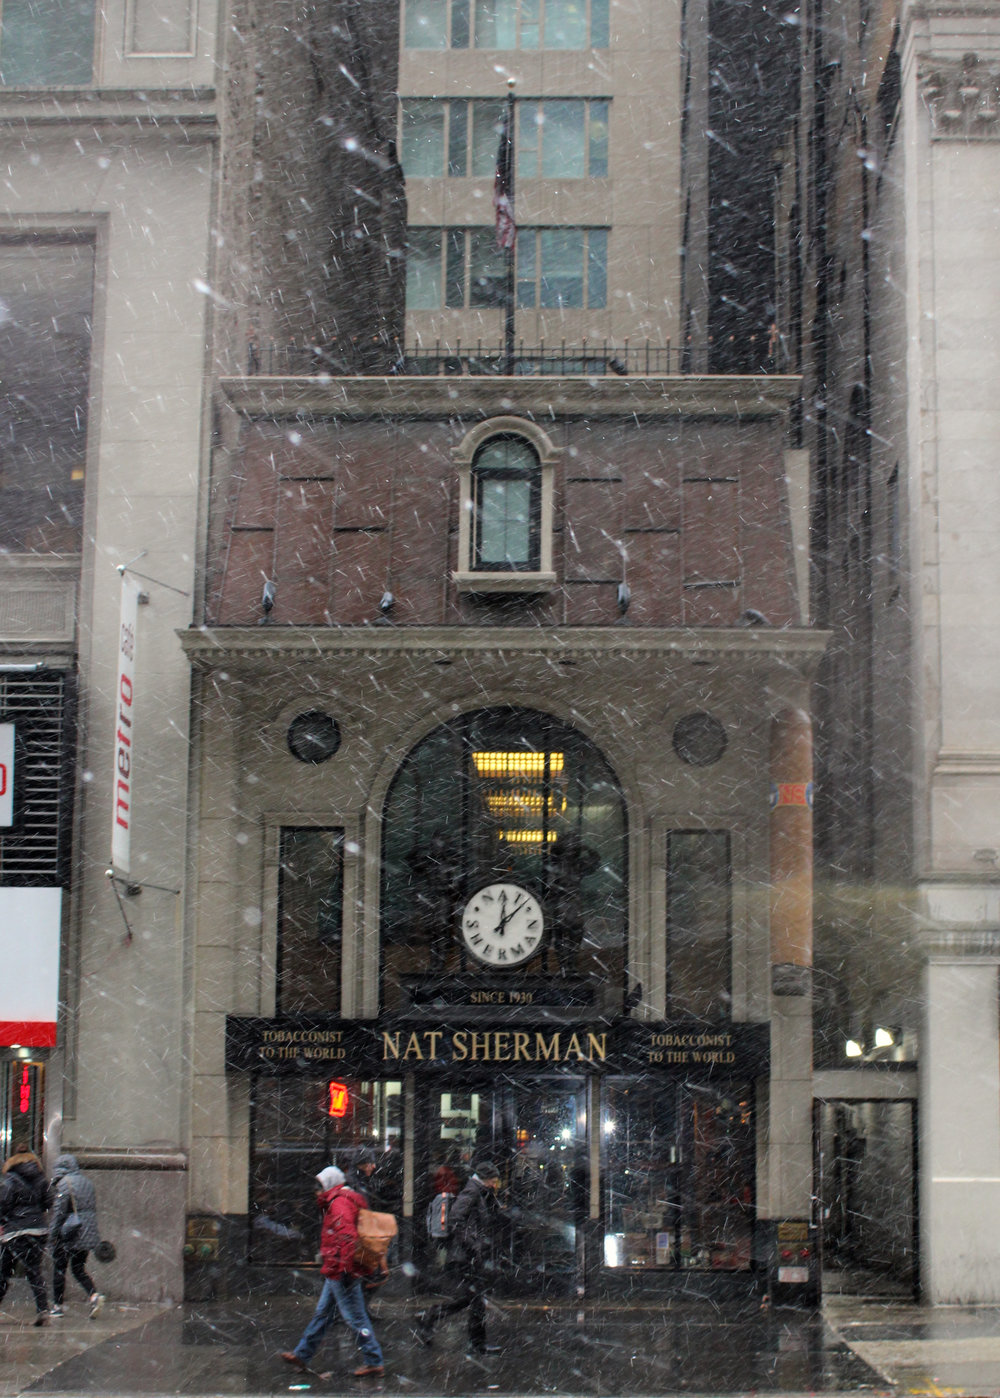 The Nat Sherman Townhouse, built in 2007 to convey Old World authenticity.